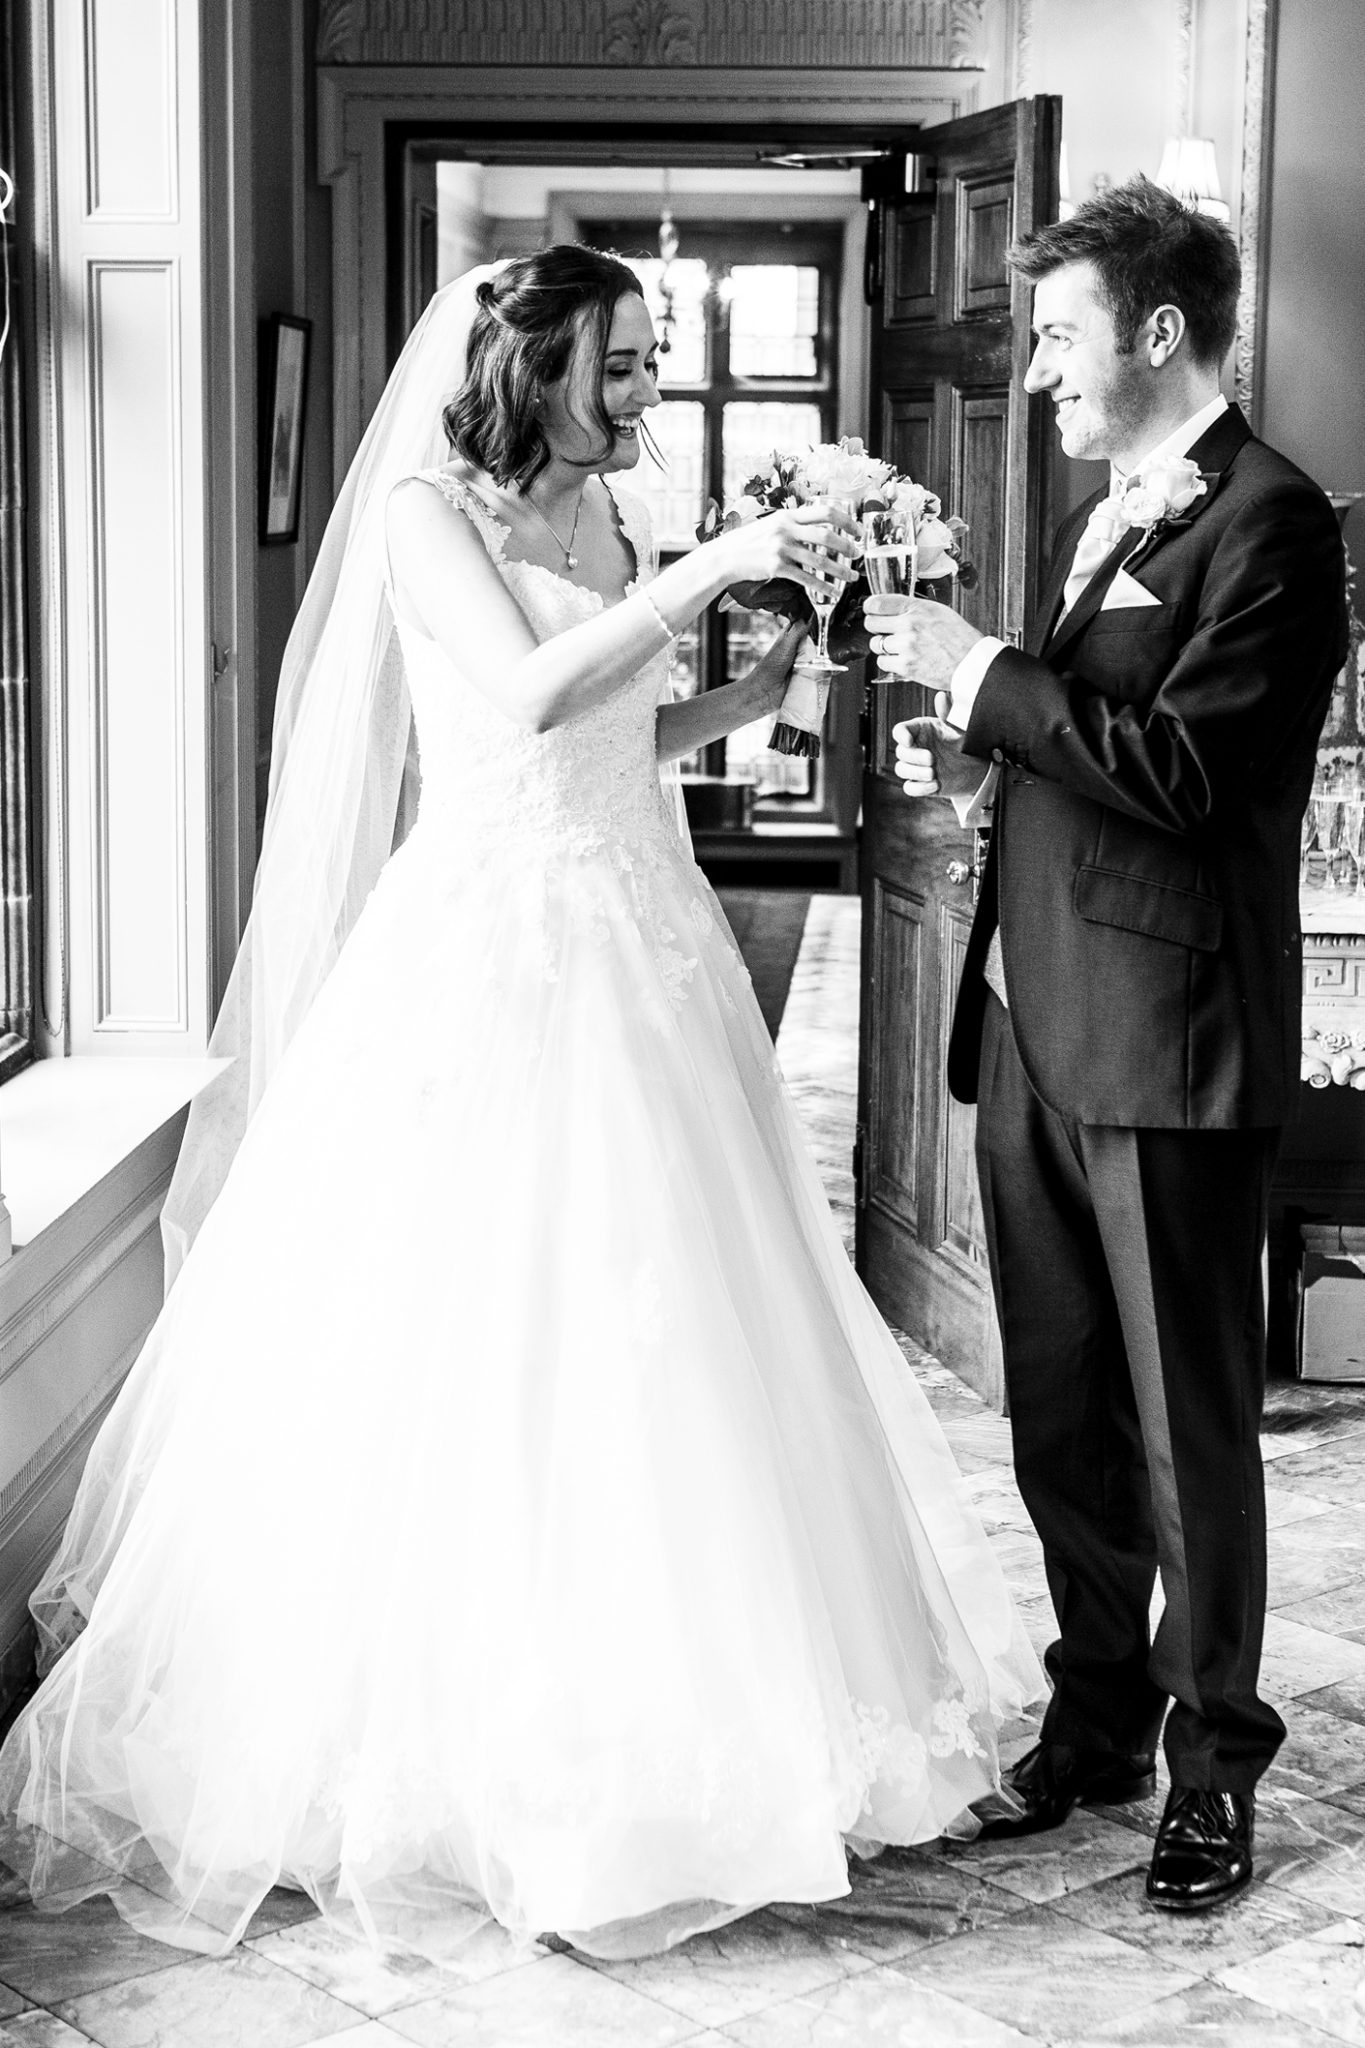 wedding-photography-of-the-bride-and-groom-after-the-ceremony